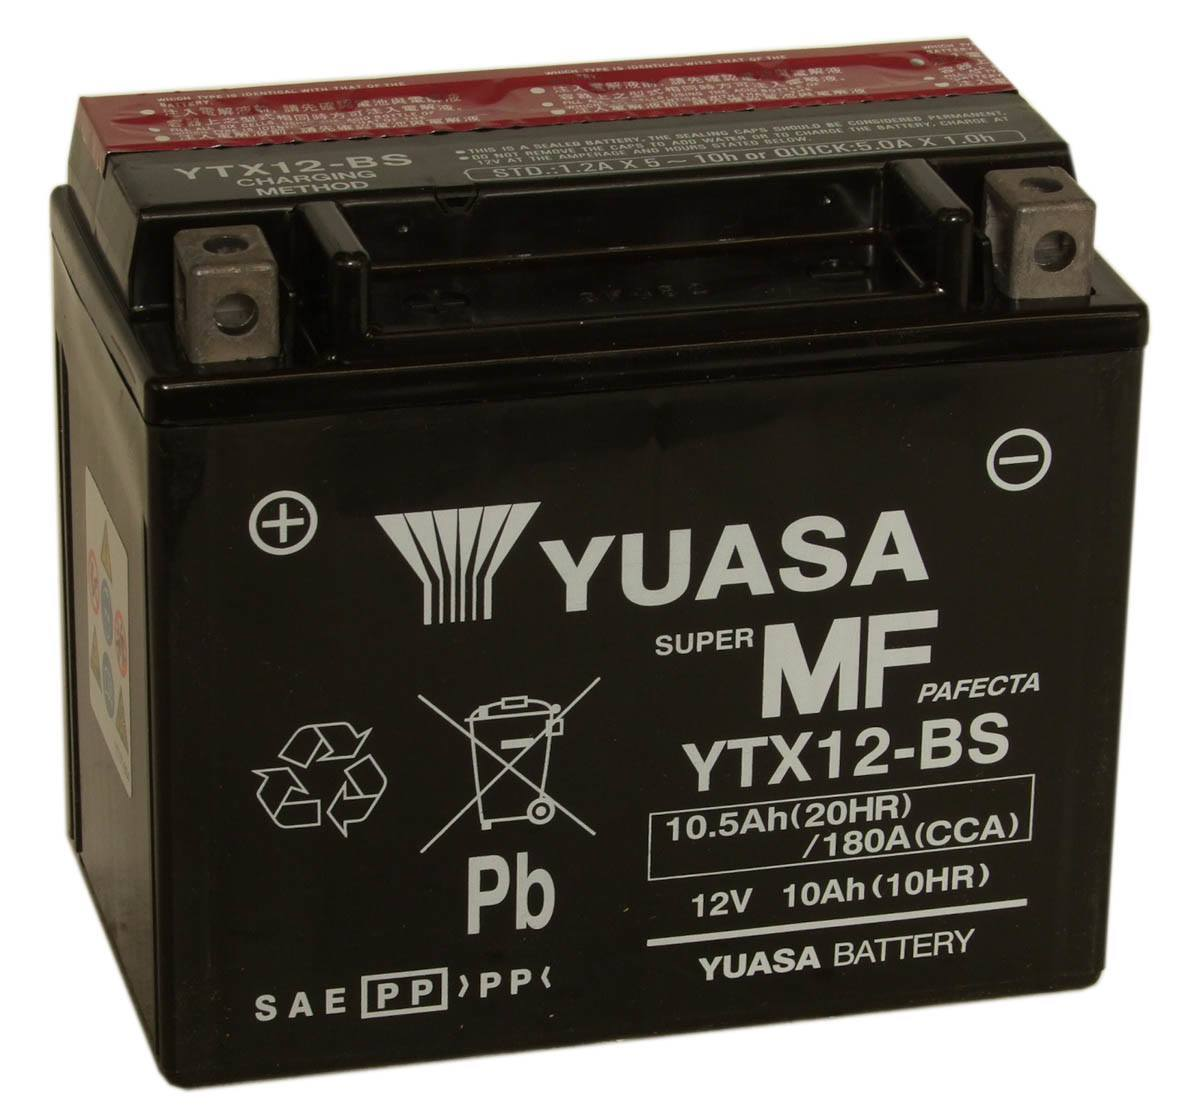 Get it delivered to your door - Yuasa YTX12-BS (USA) - 2100 (EGP)